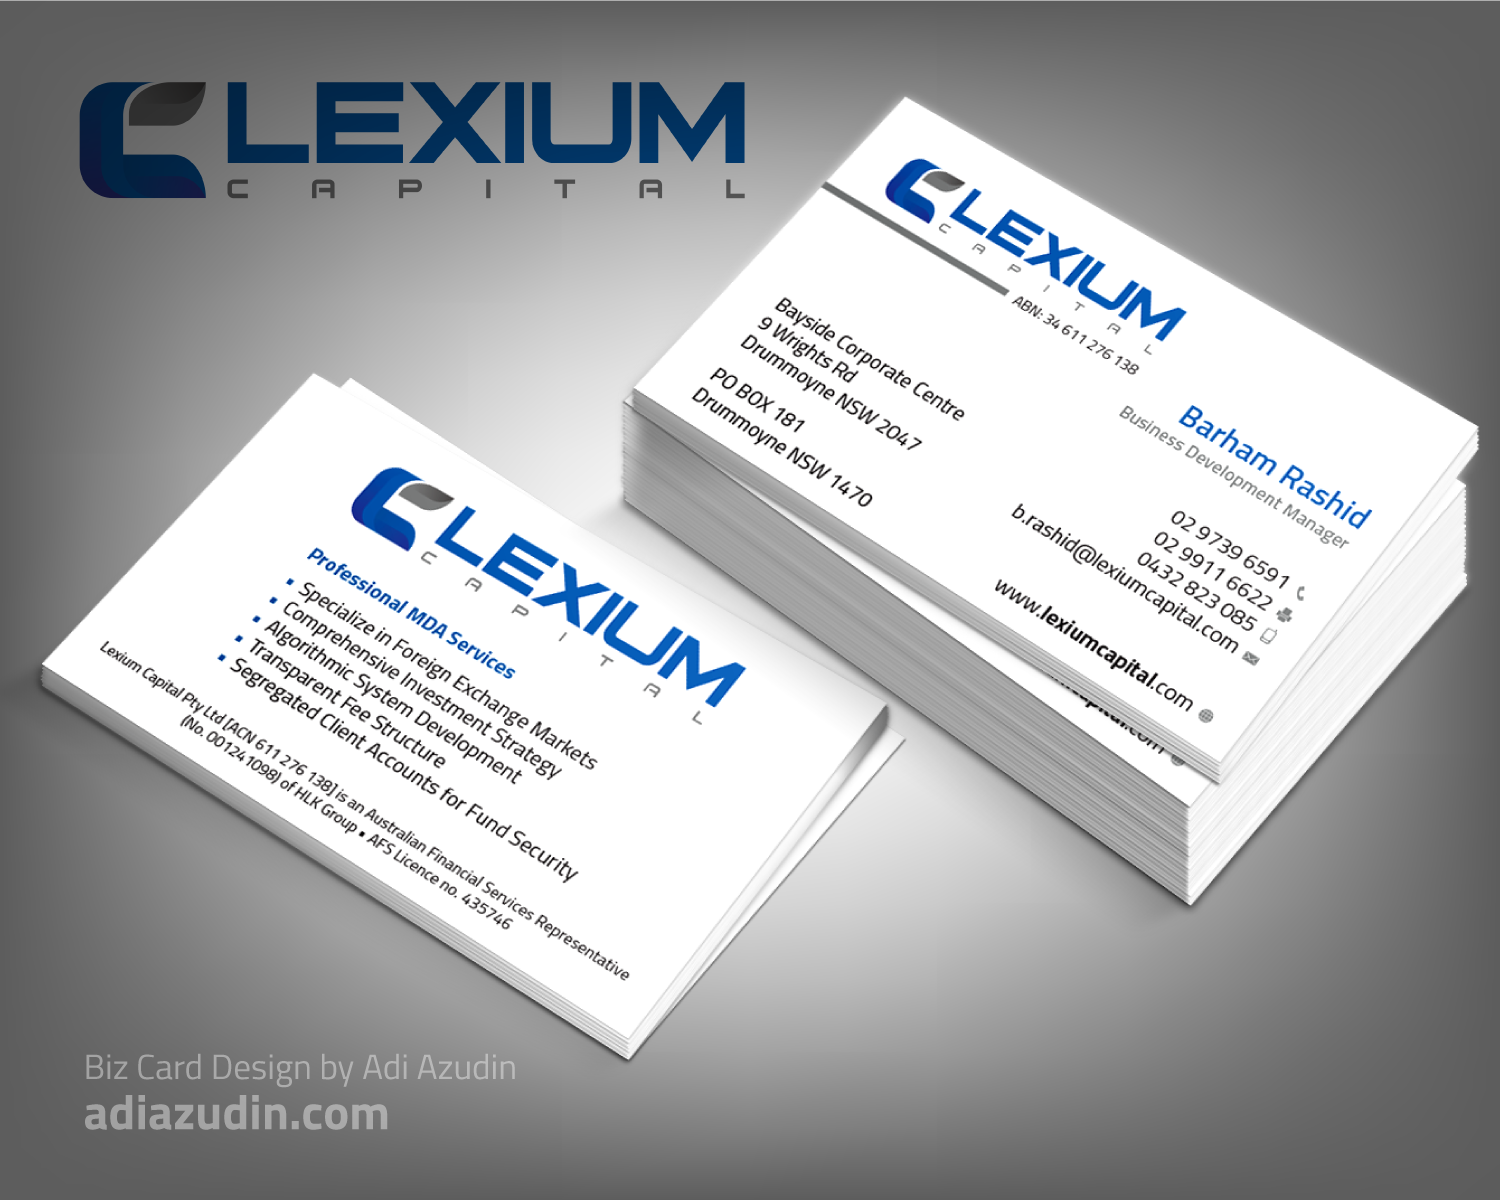 Serious modern financial service business card design for a business card design by adiazudin for this project design 10641067 colourmoves